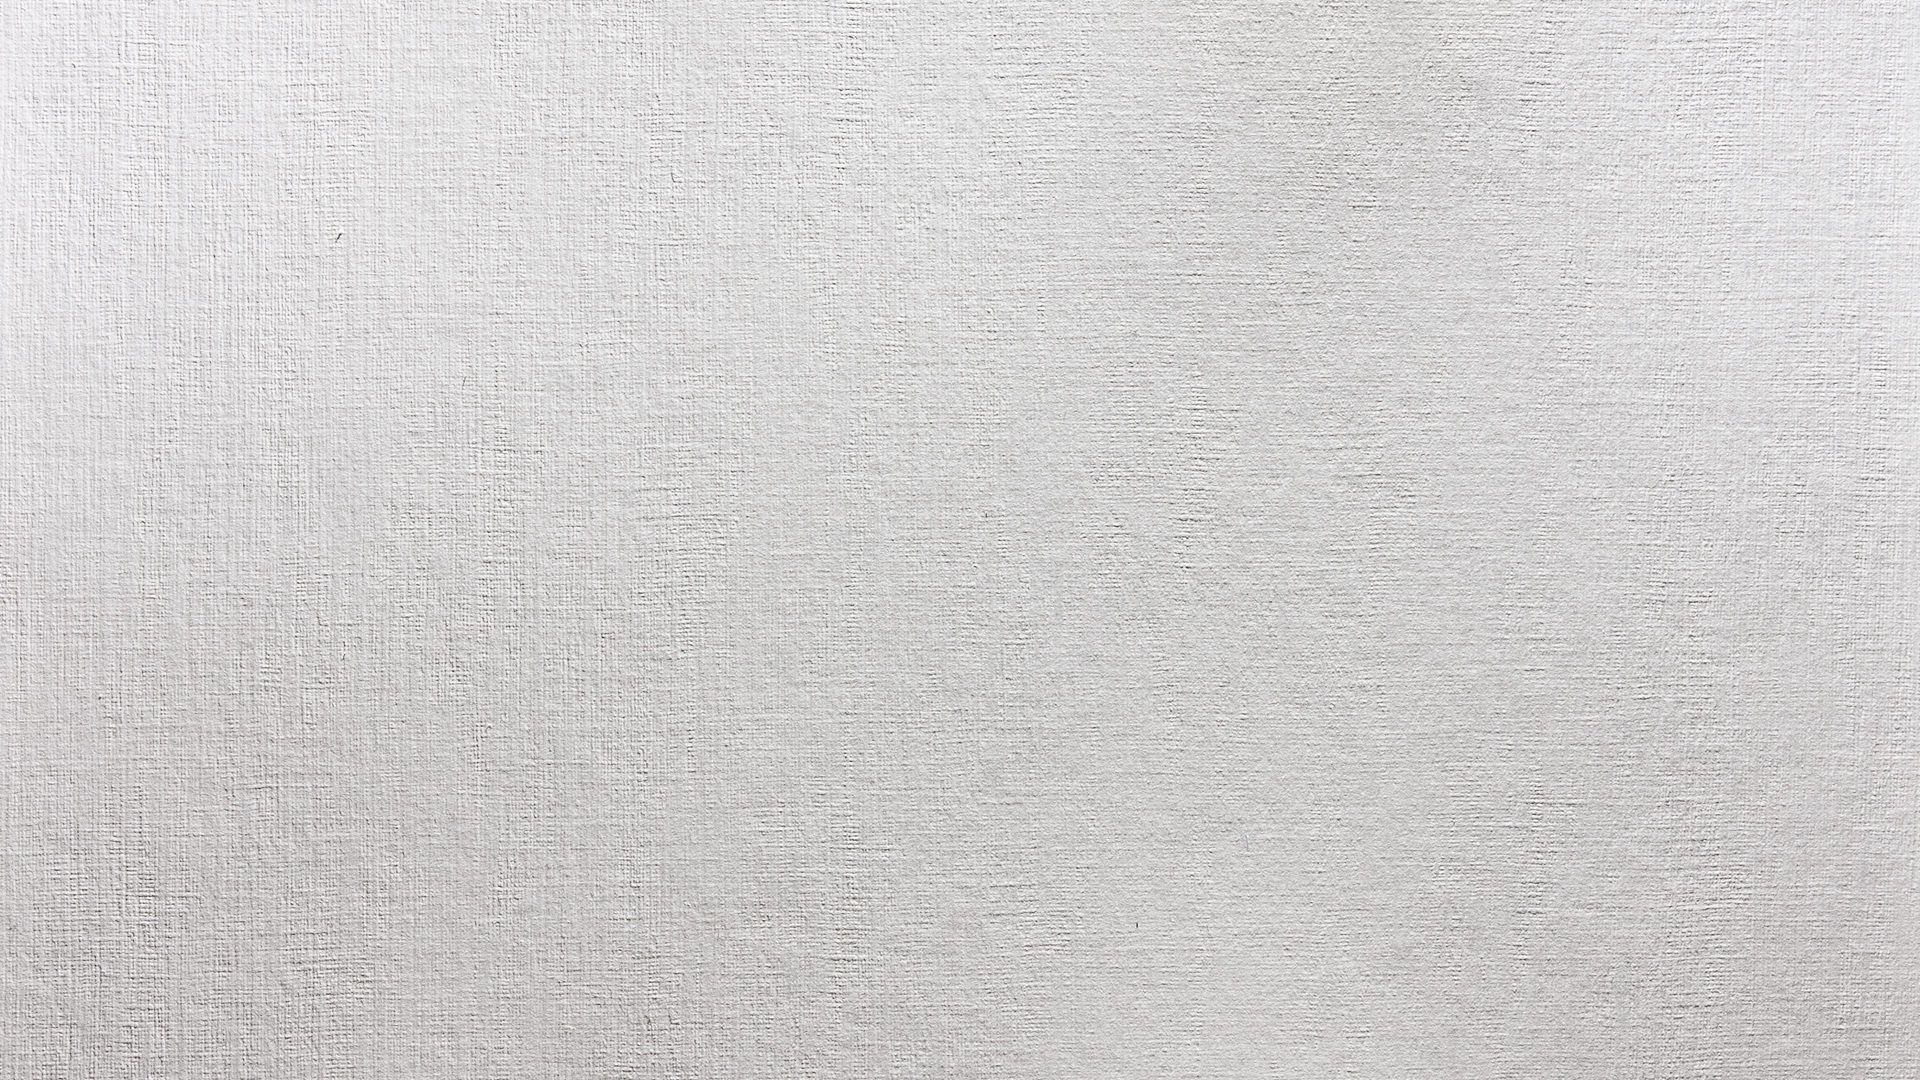 1920x1080 65+ Paper Texture Wallpapers - Download at WallpaperBro